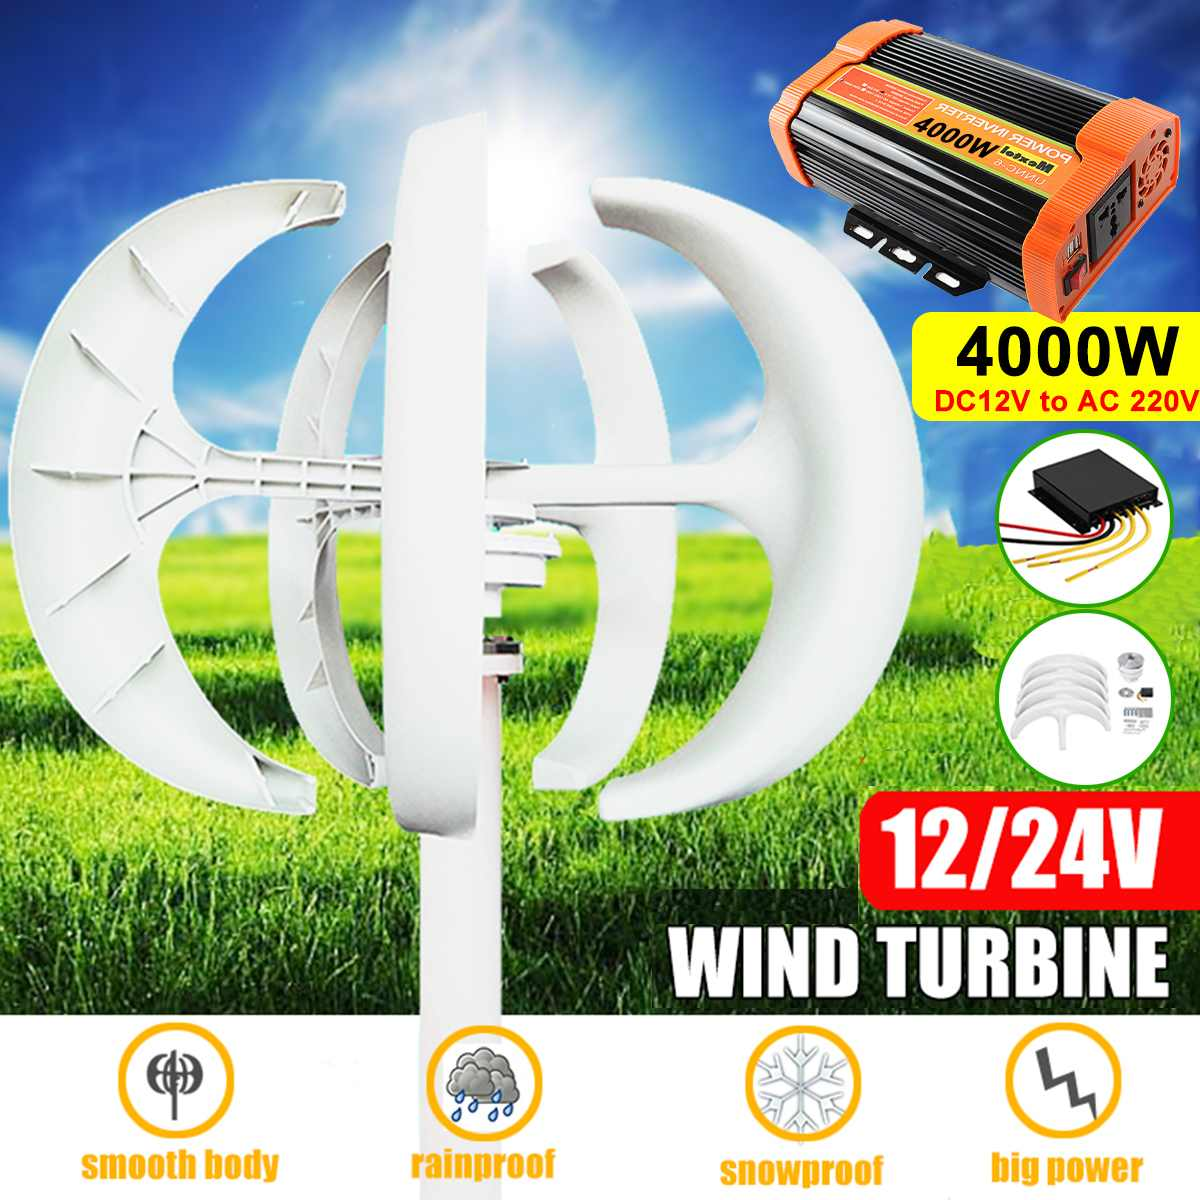 4000W AC 12V 24V 5 Blades Vertical Axis Wind Turbine Generator Permanent Magnet Lantern Motor Kit With Controller For Home